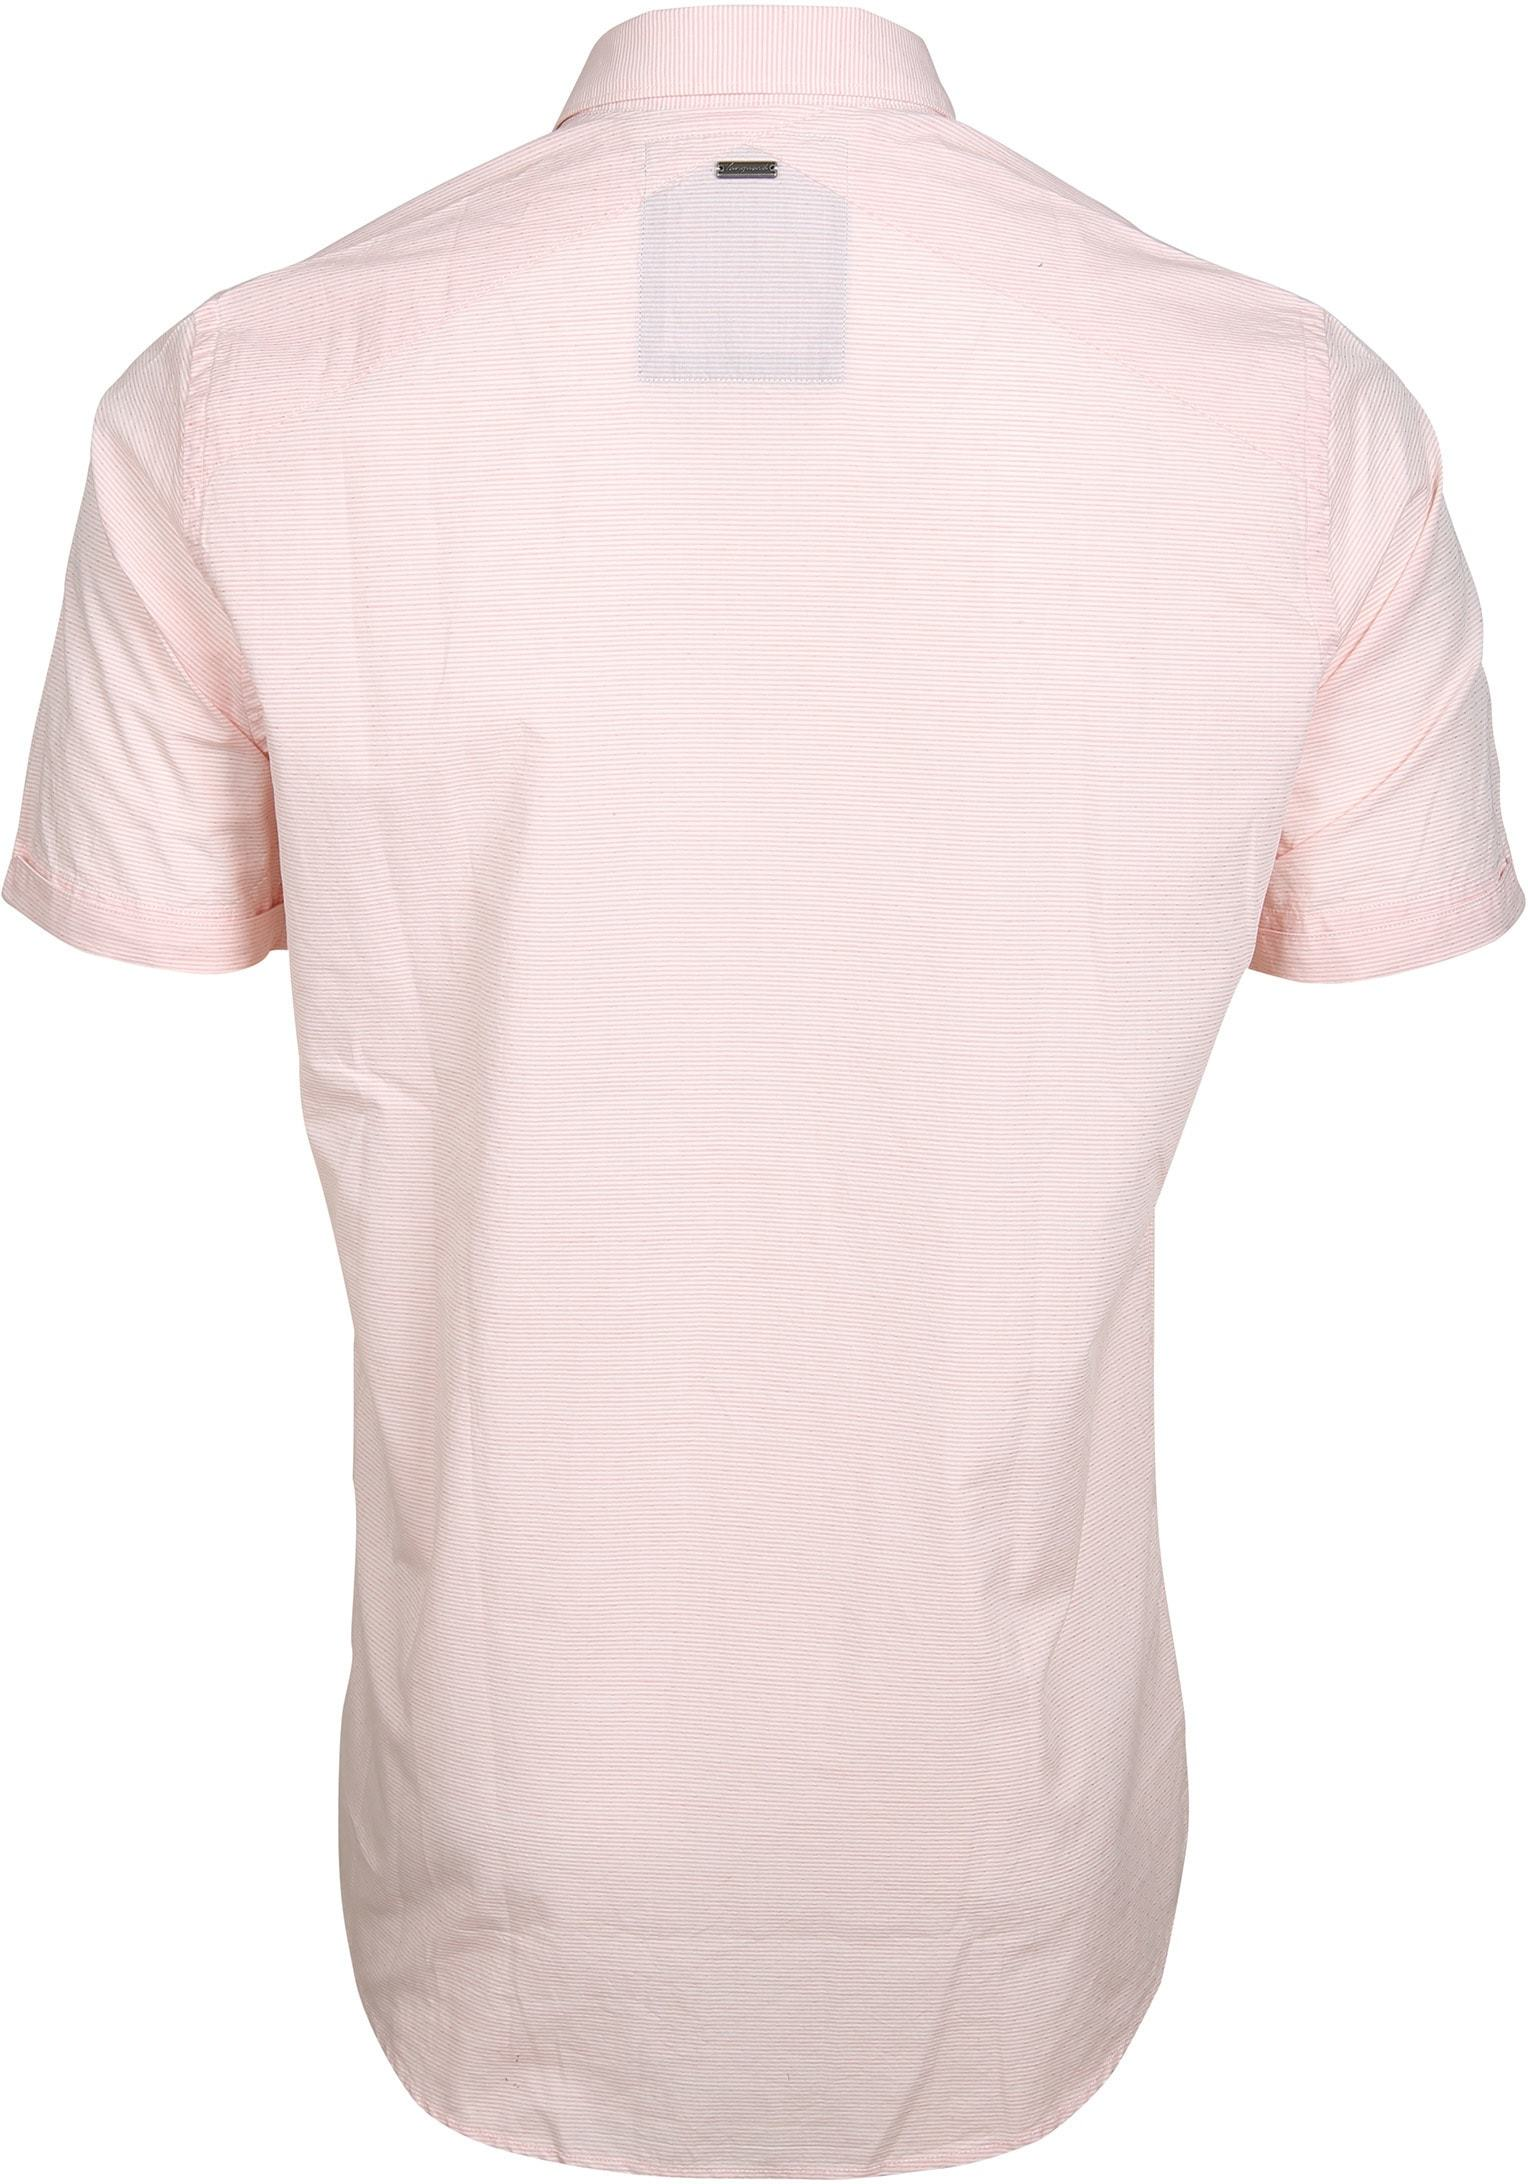 Vanguard Overhemd Colorad Stripe Roze foto 3